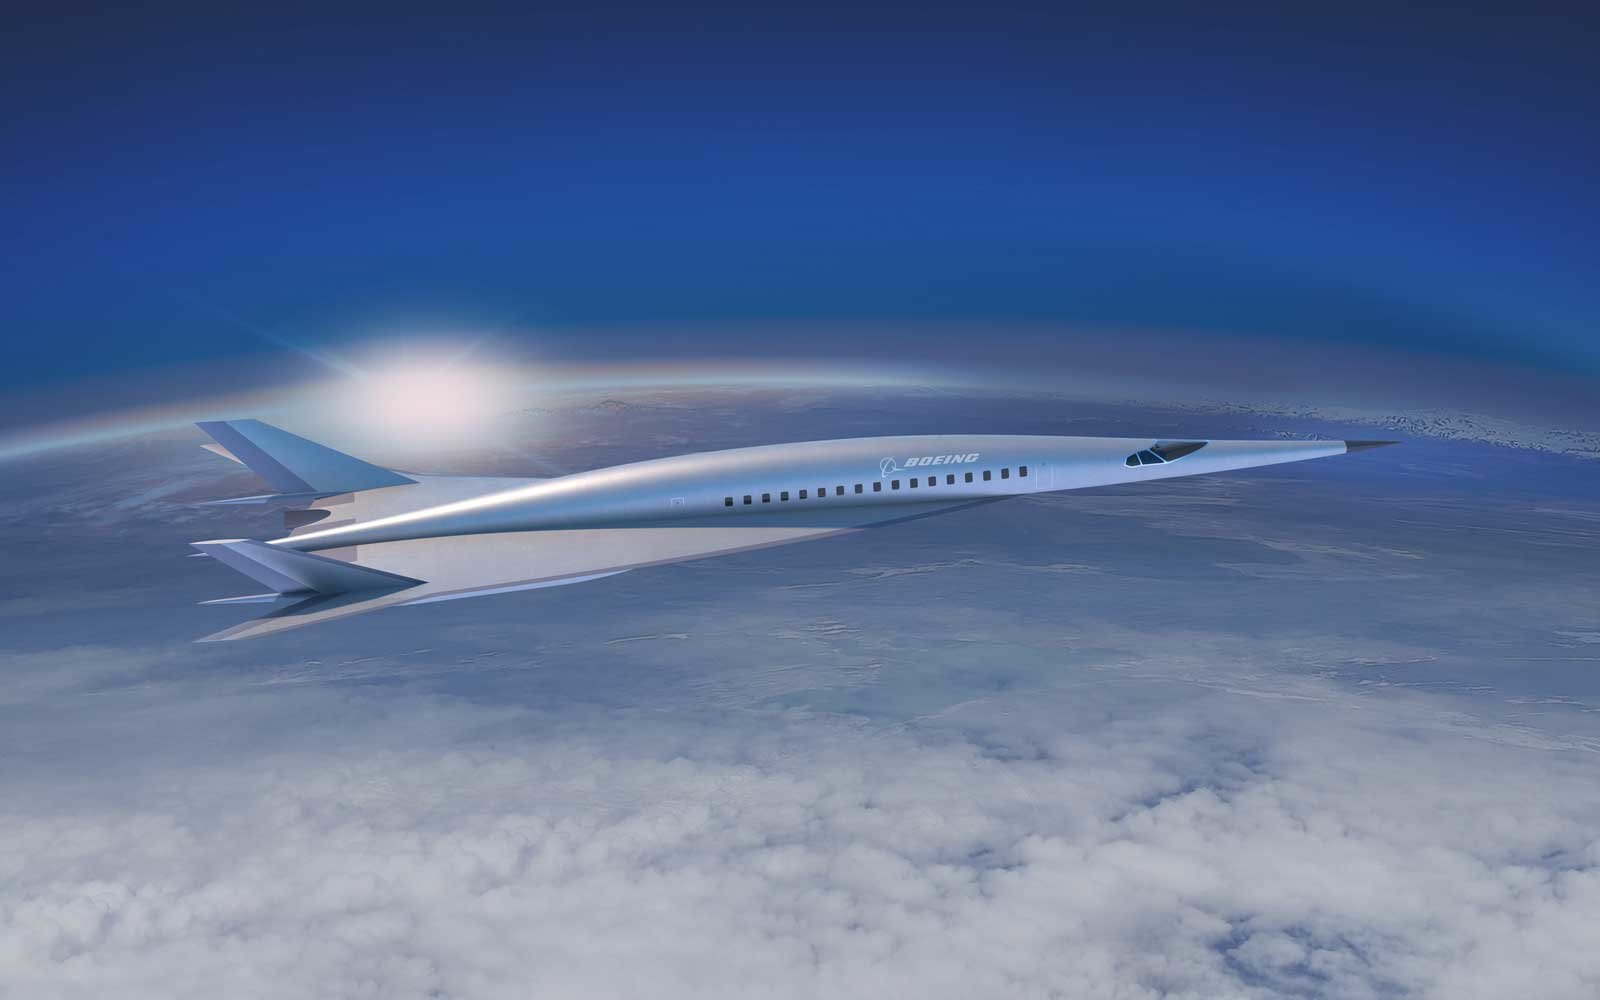 Boeing concept aircraft